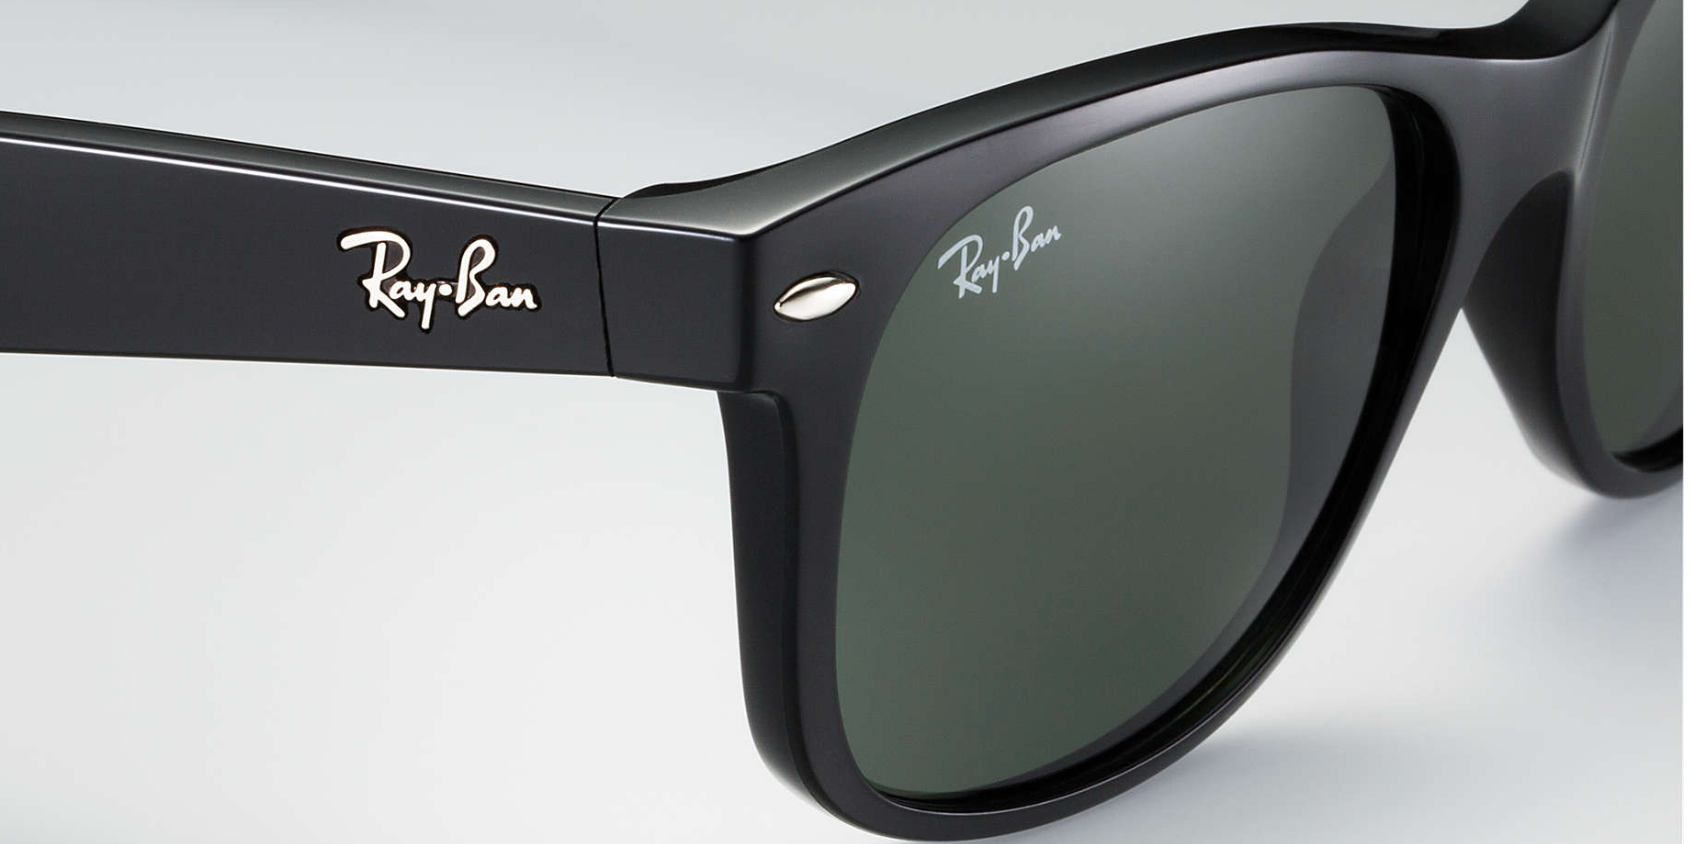 ee51ca299c Ray-Ban New Wayfarer Black Classic Sunglasses RB2132 - Flight Sunglasses